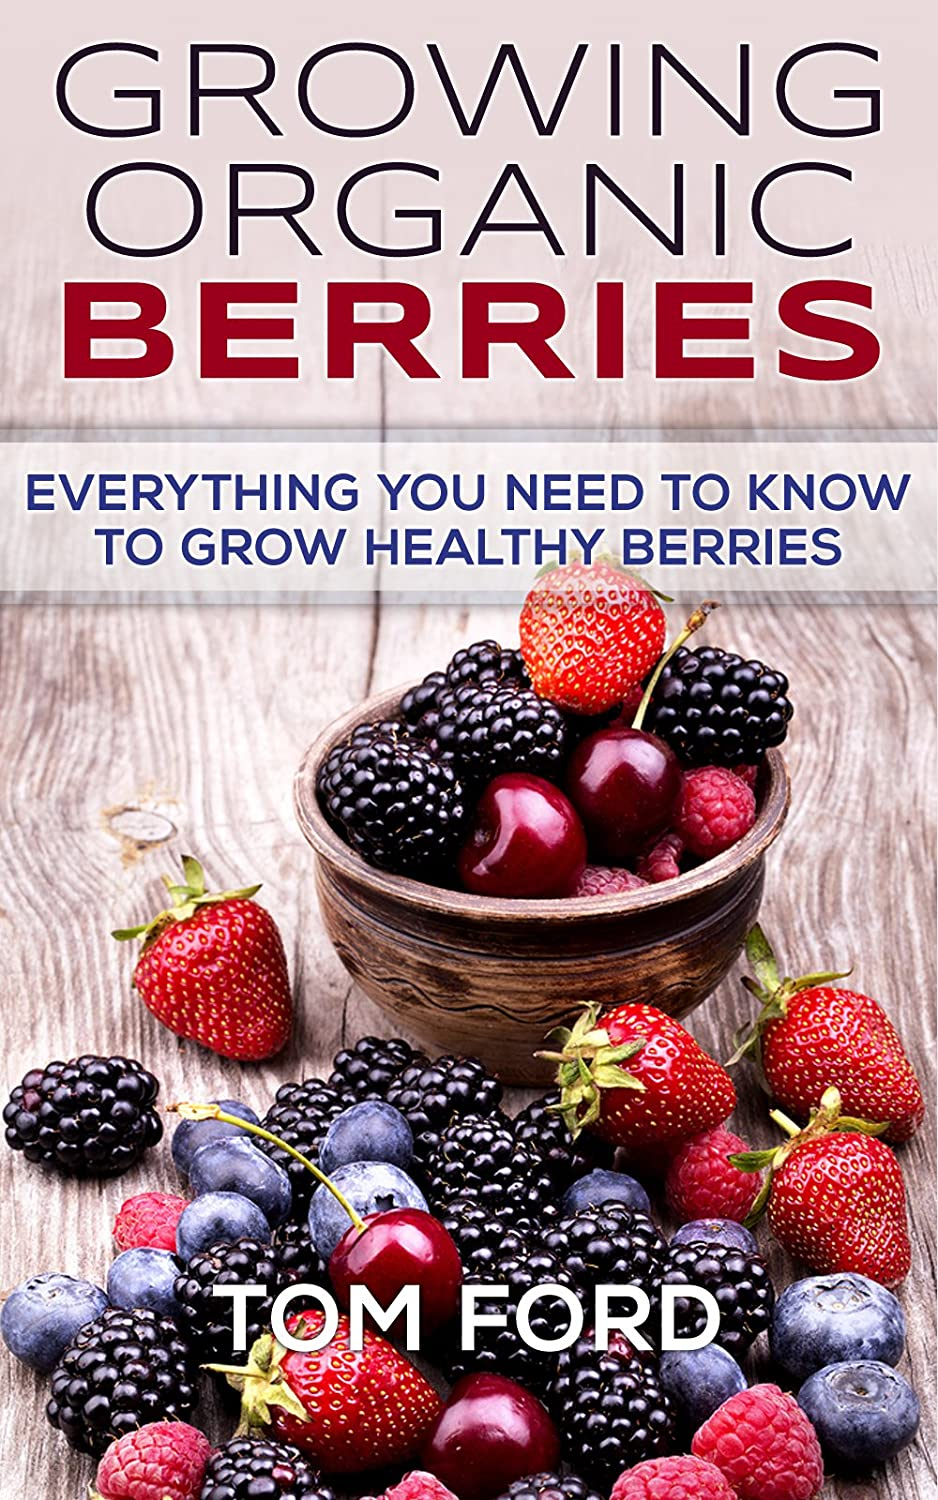 http://www.amazon.com/Growing-Organic-Berries-Strawberries-Blackberries-ebook/dp/B00JKIET28/ref=as_sl_pc_ss_til?tag=lettfromahome-20&linkCode=w01&linkId=7AYUVLP3IEZZ54GP&creativeASIN=B00JKIET28